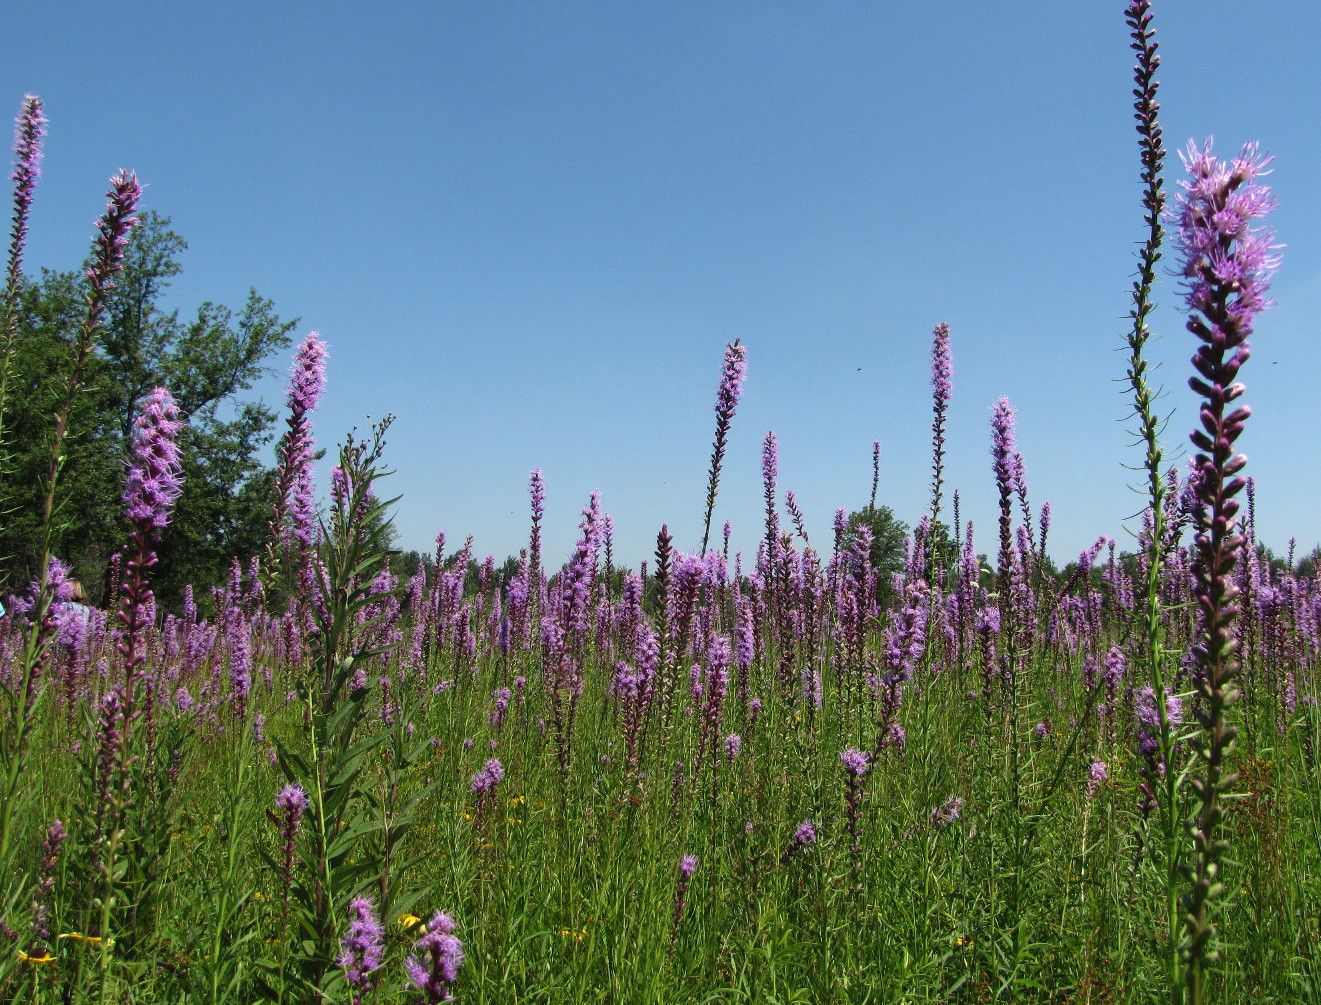 A field of purple flower spikes popping up from the open green field, blue skies above.